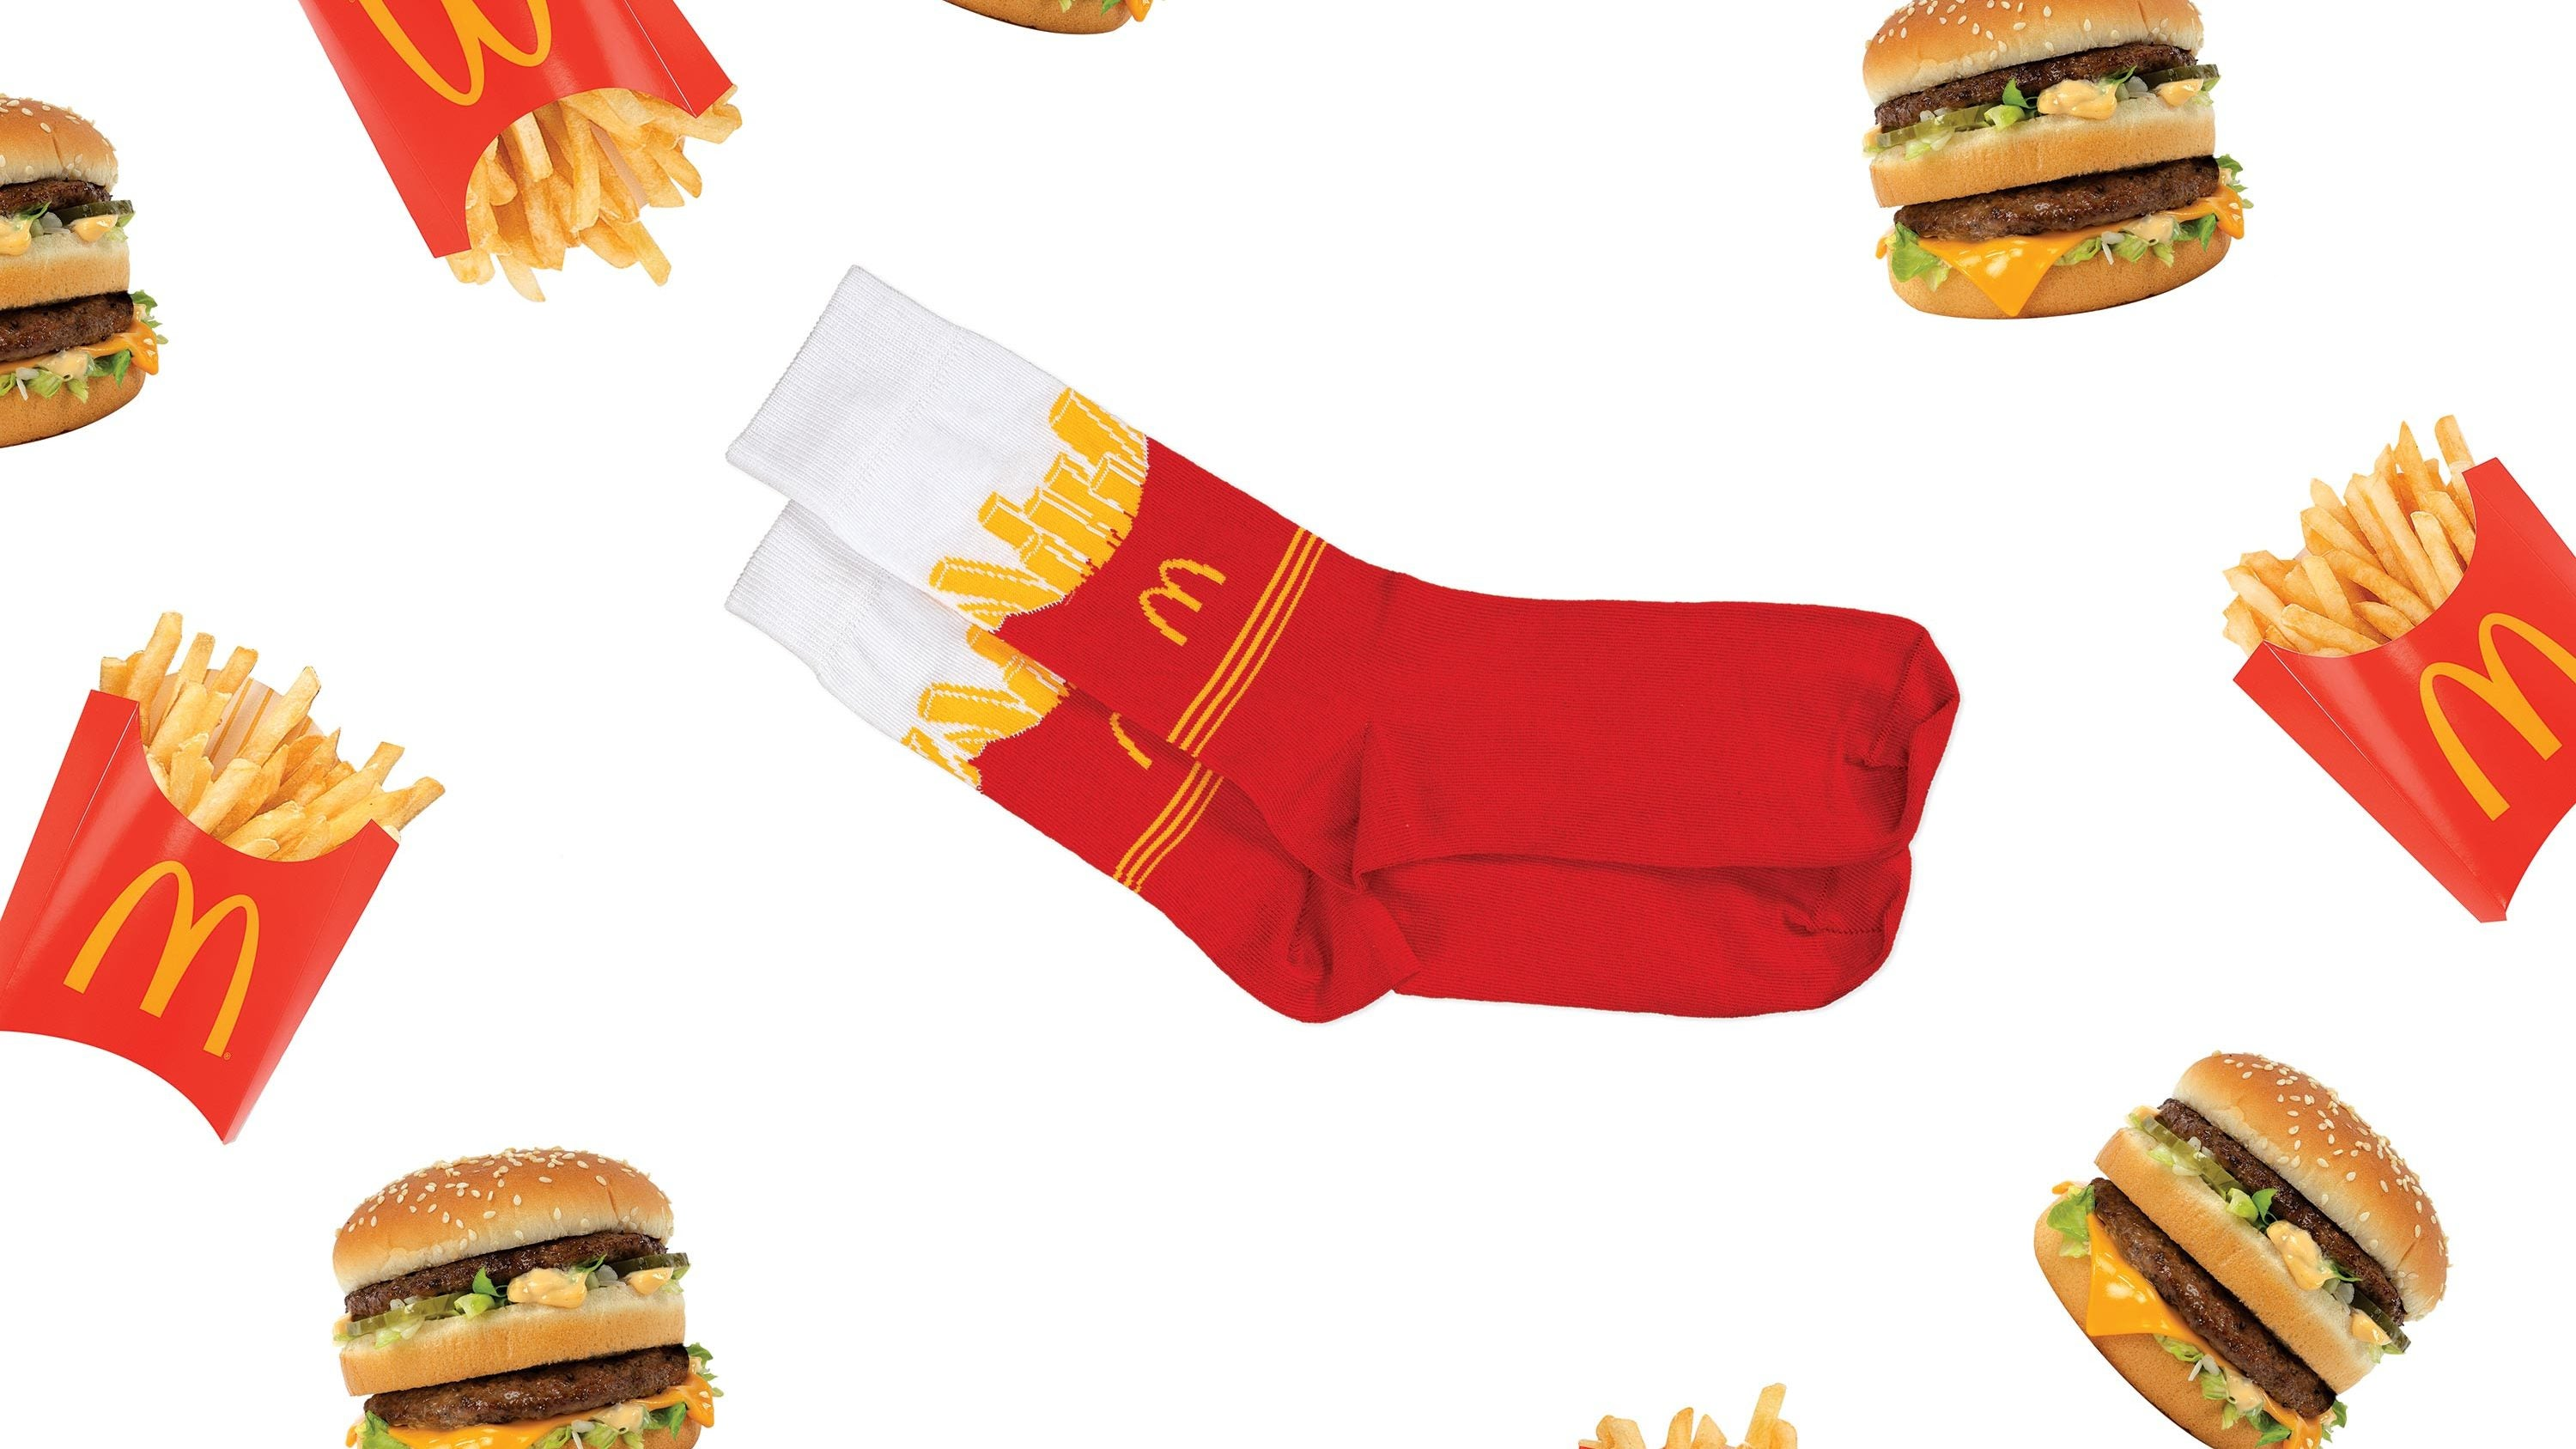 Promotional banner from the collaboration of McDonald's and Uber Eats.